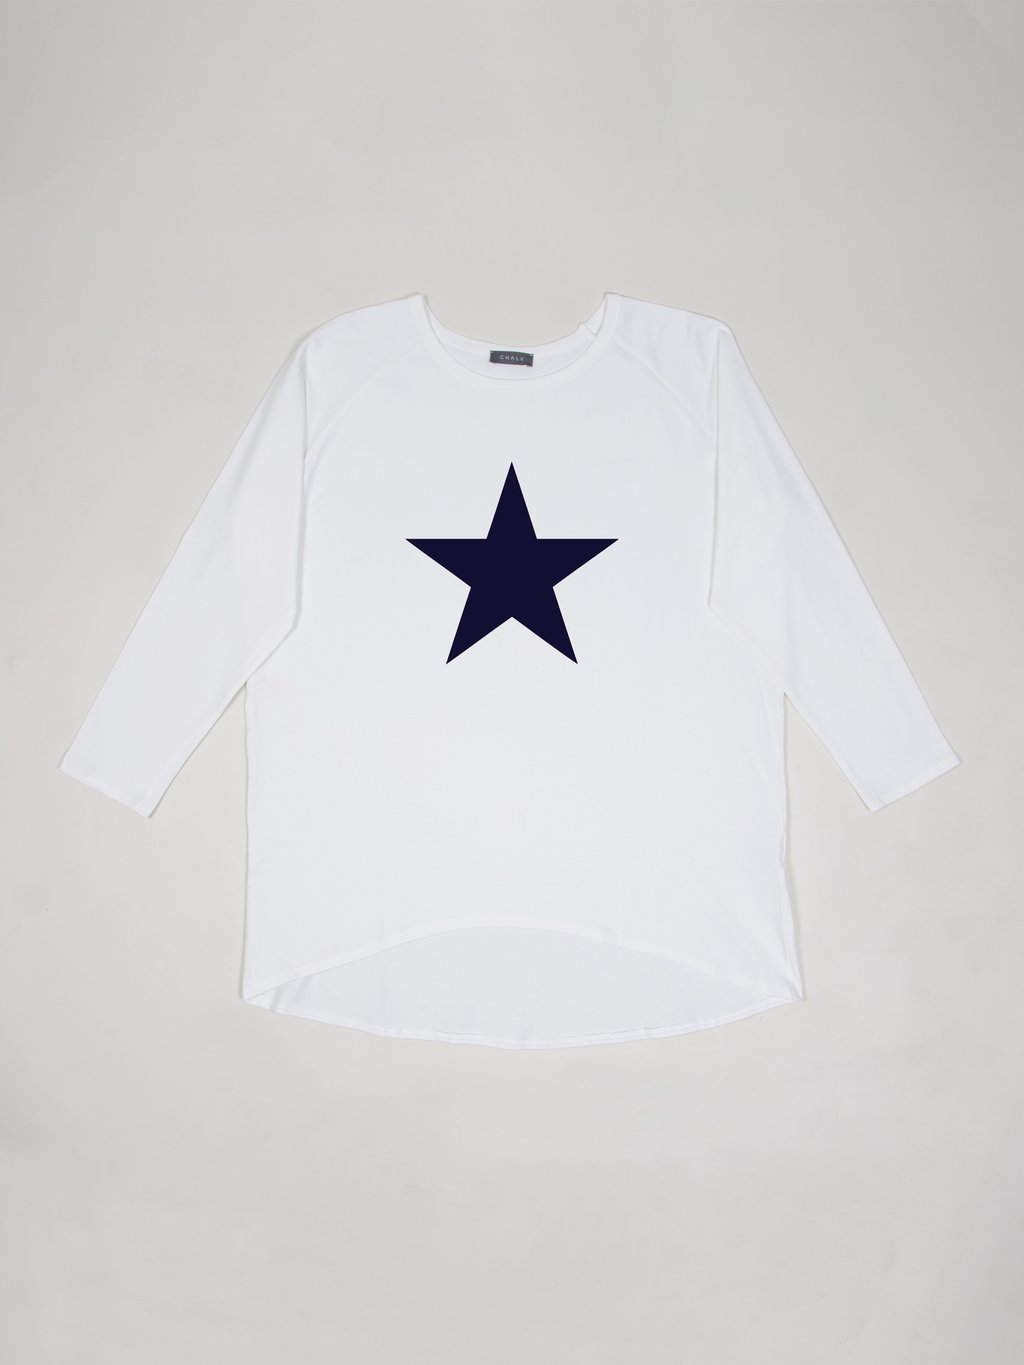 Chalk Robyn Top White with Navy Star